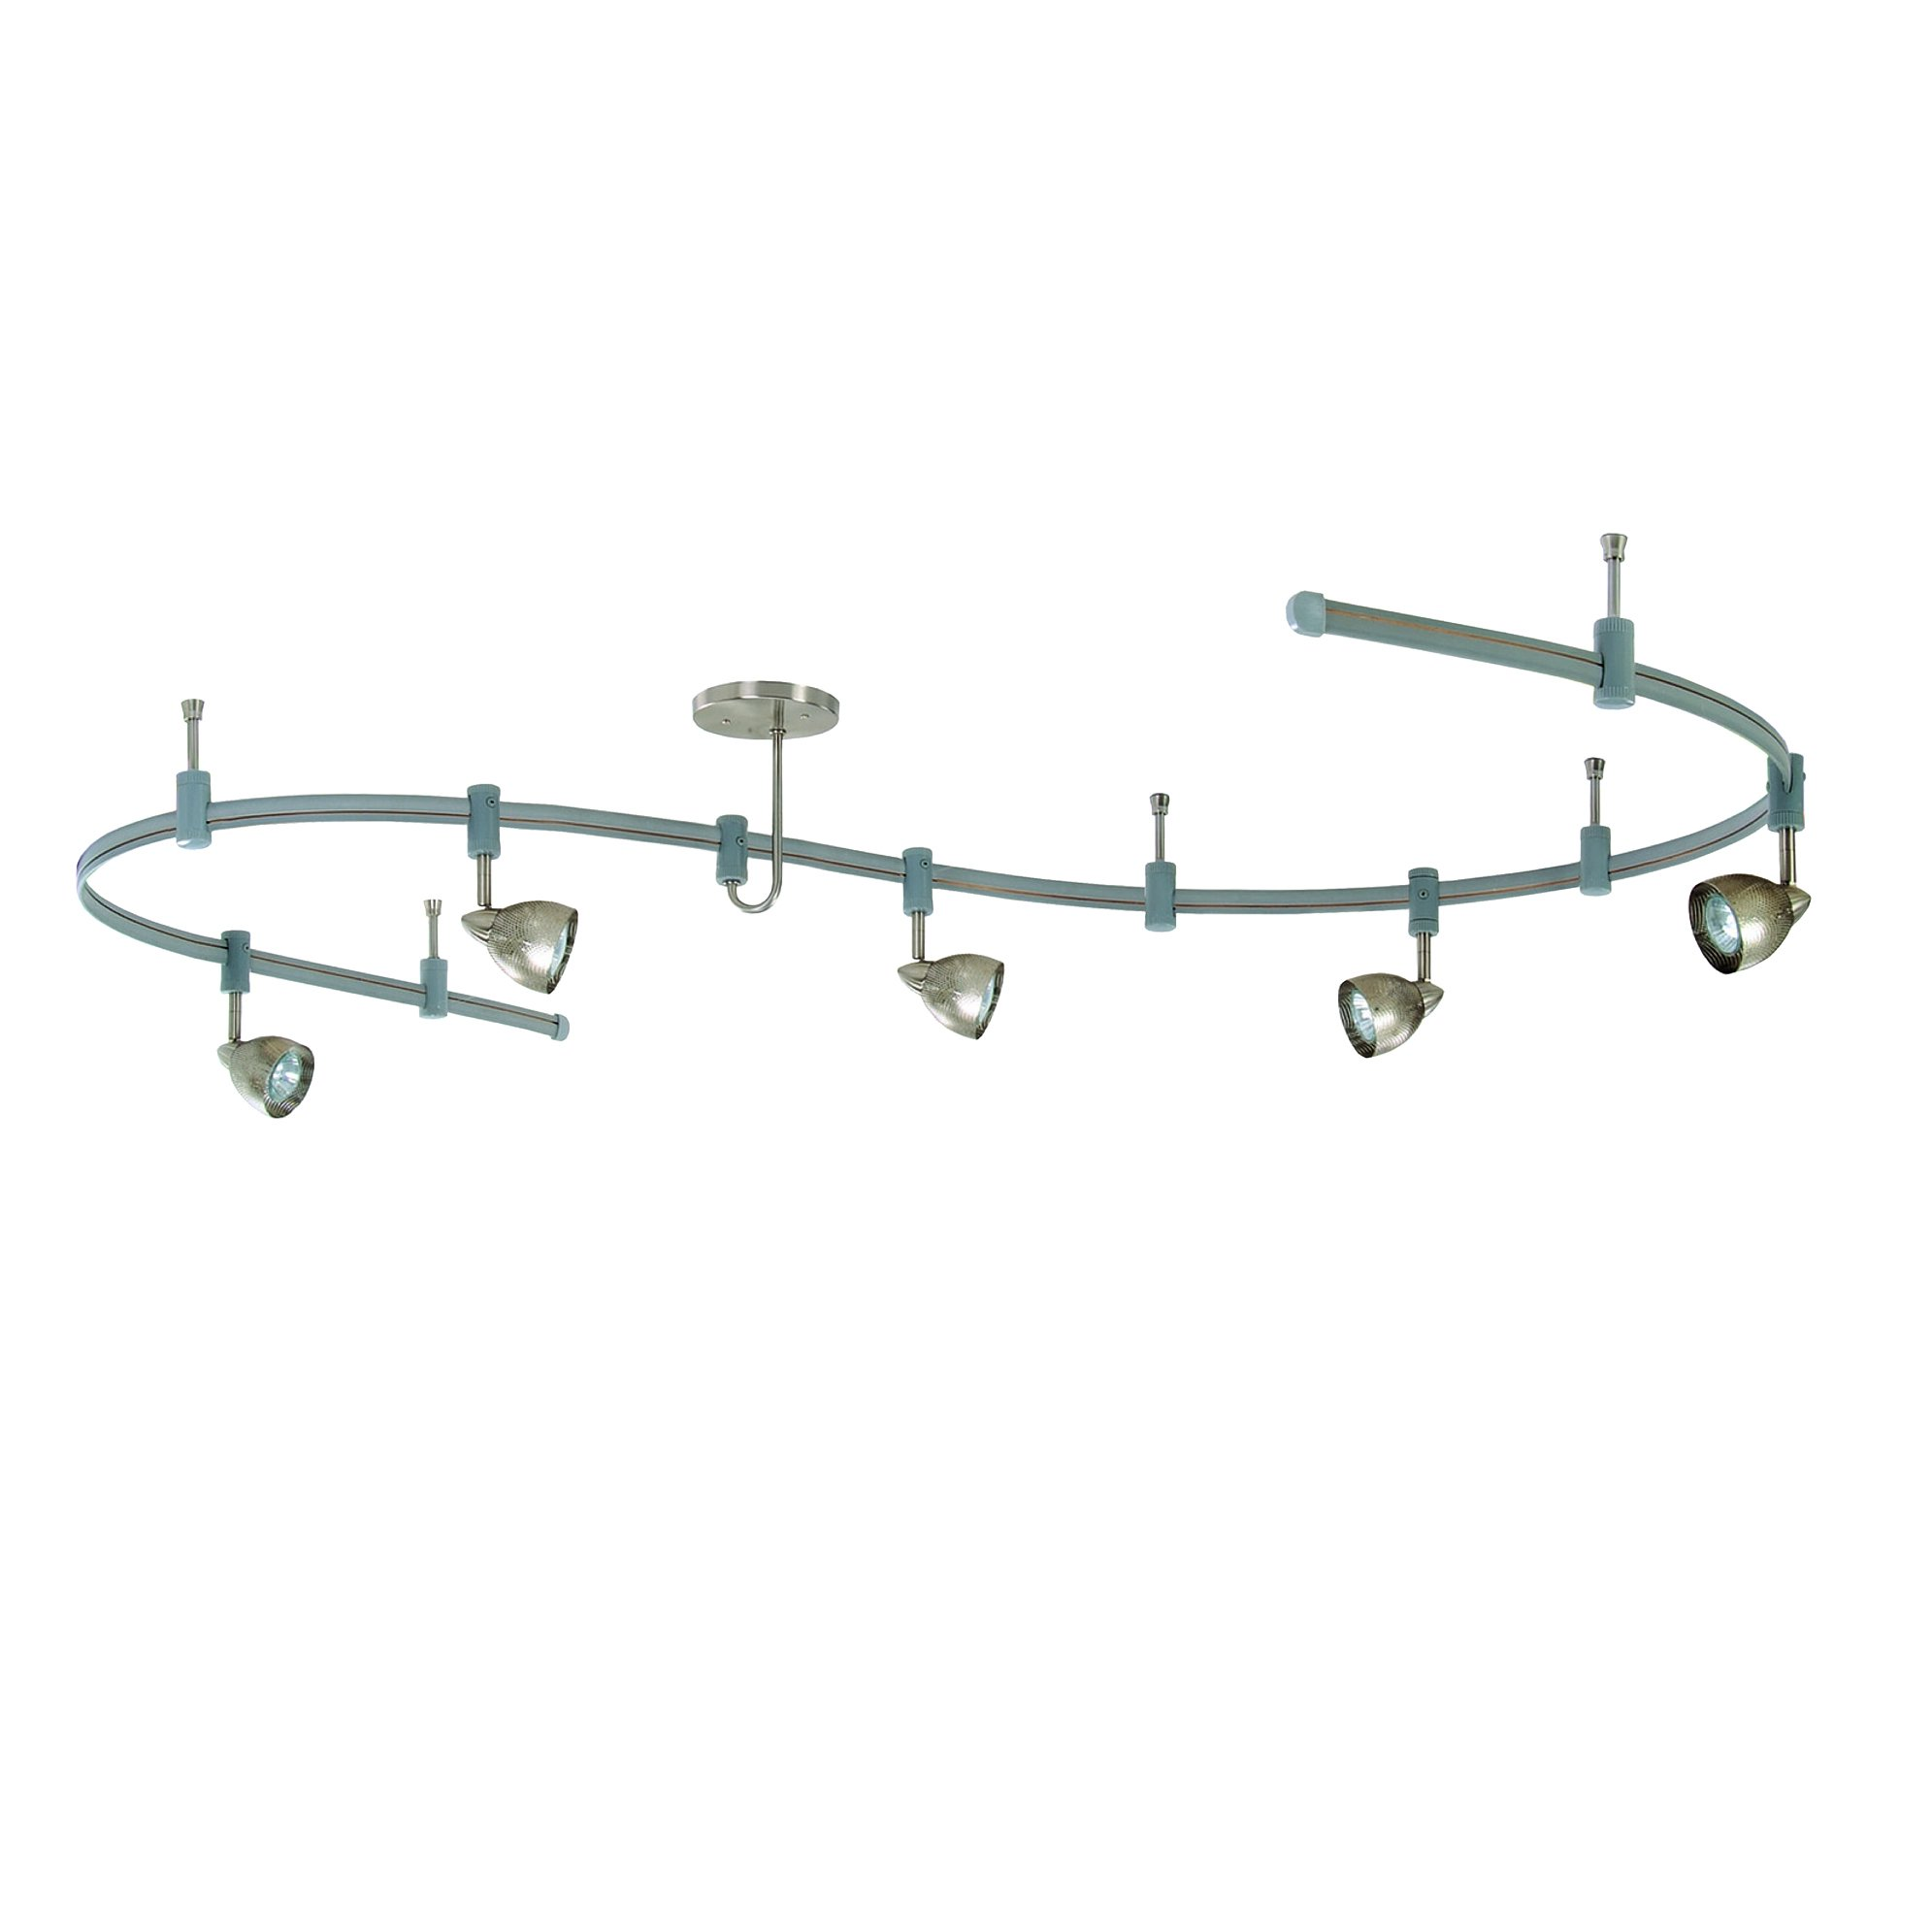 Juno Pendant Lighting Fixtures